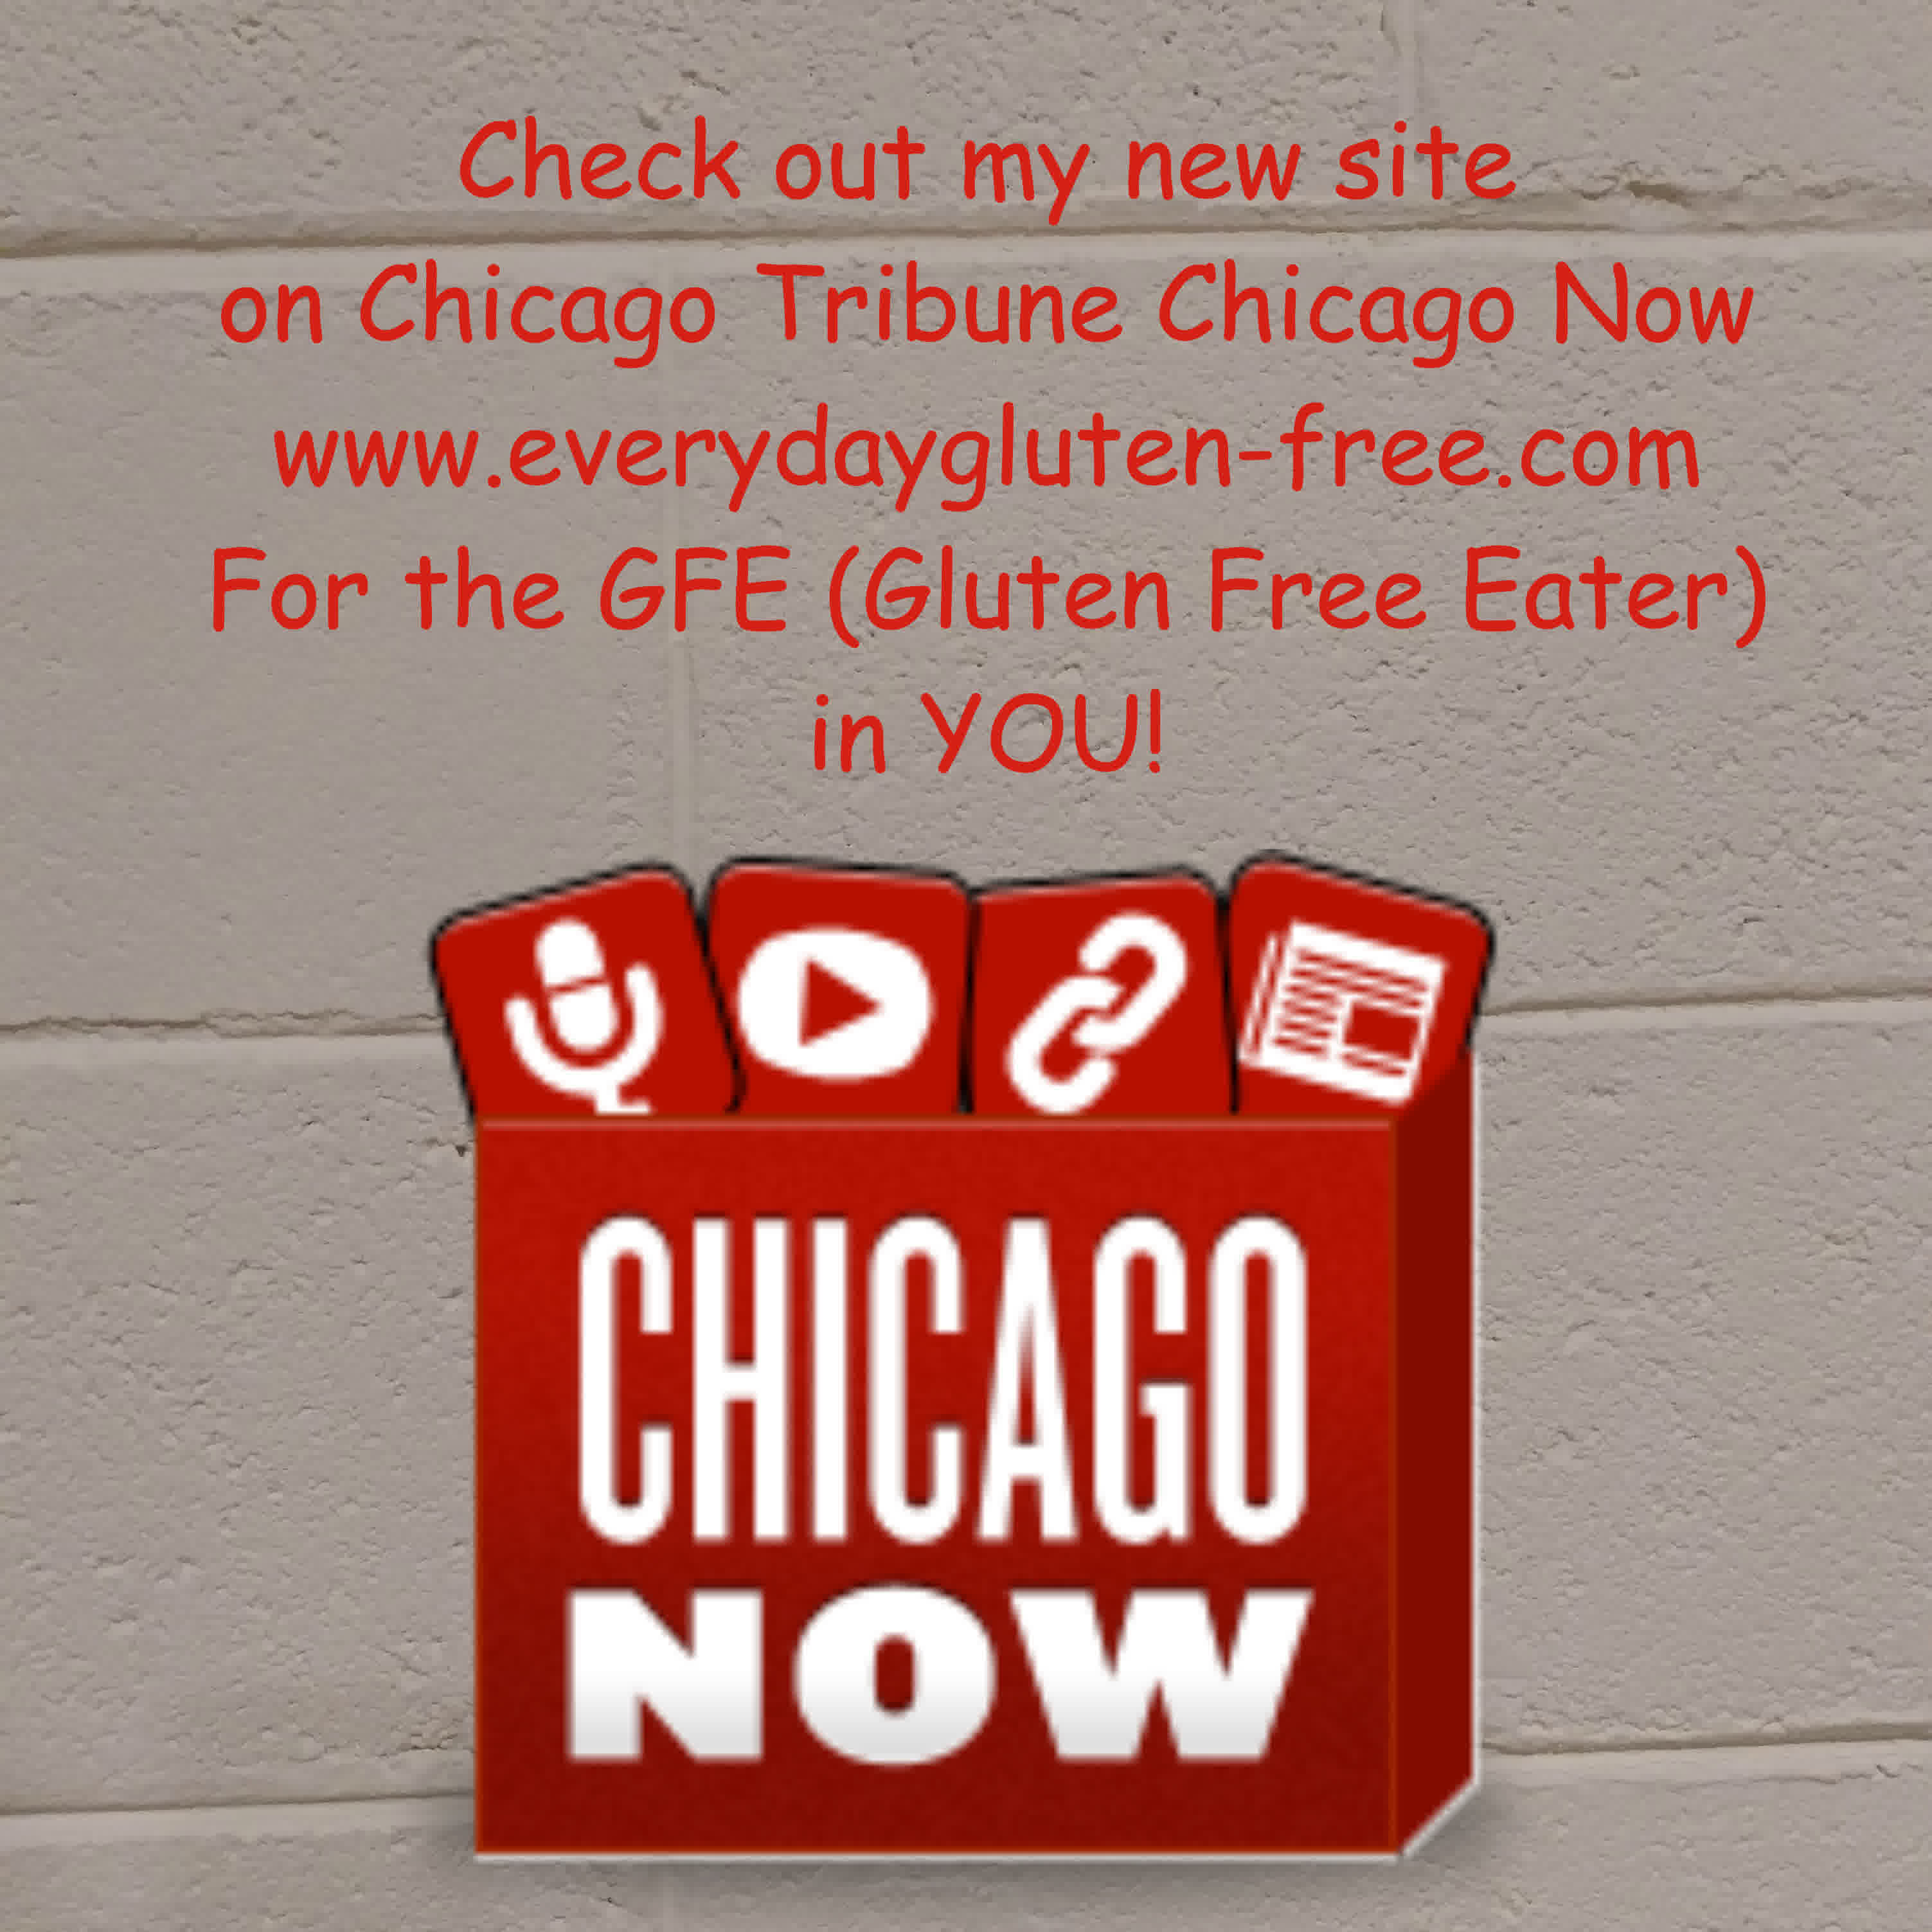 Make sure to check out my Chicago Tribune Chicago Now Page:  Everyday Gluten-Free!!!